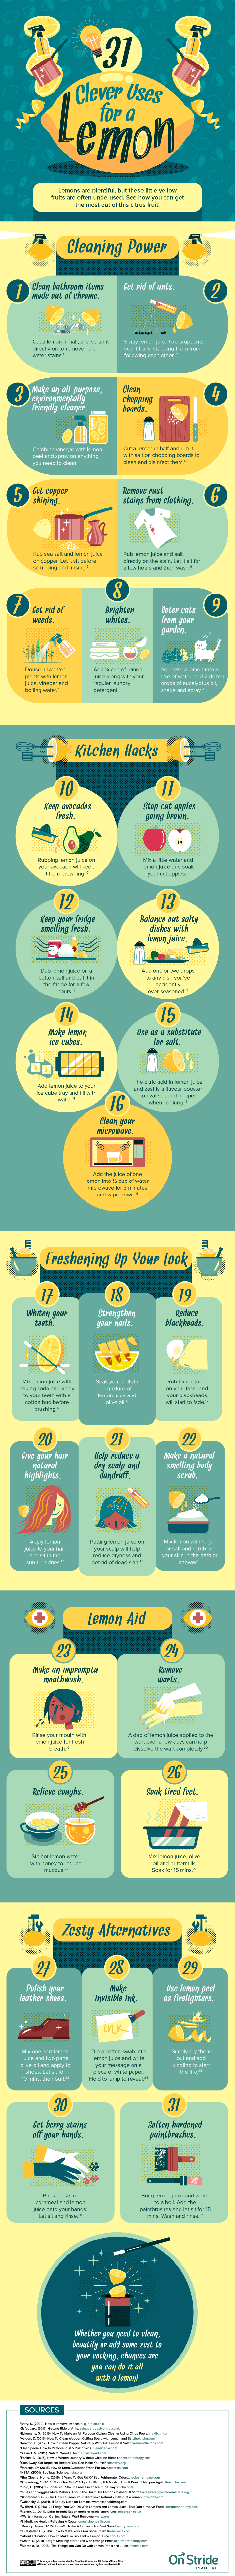 31 Clever Uses for a Lemon #Infographic